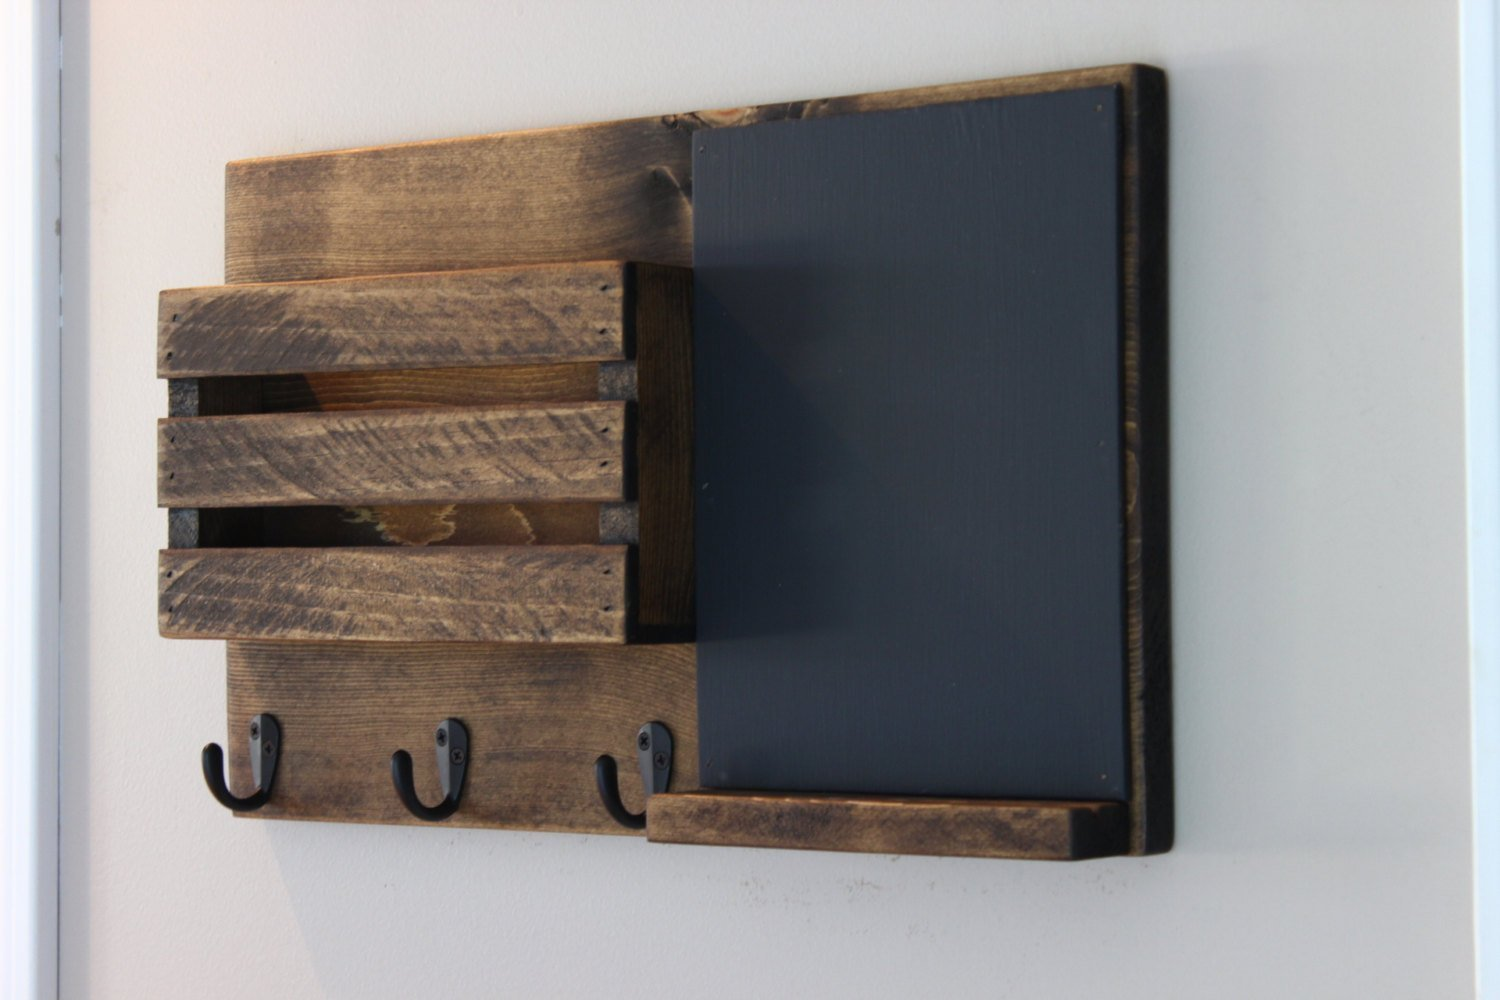 Chalk Board Mail Organizer, Mail Holder, Rustic Organizer, Key Holder, Personalization Option Available